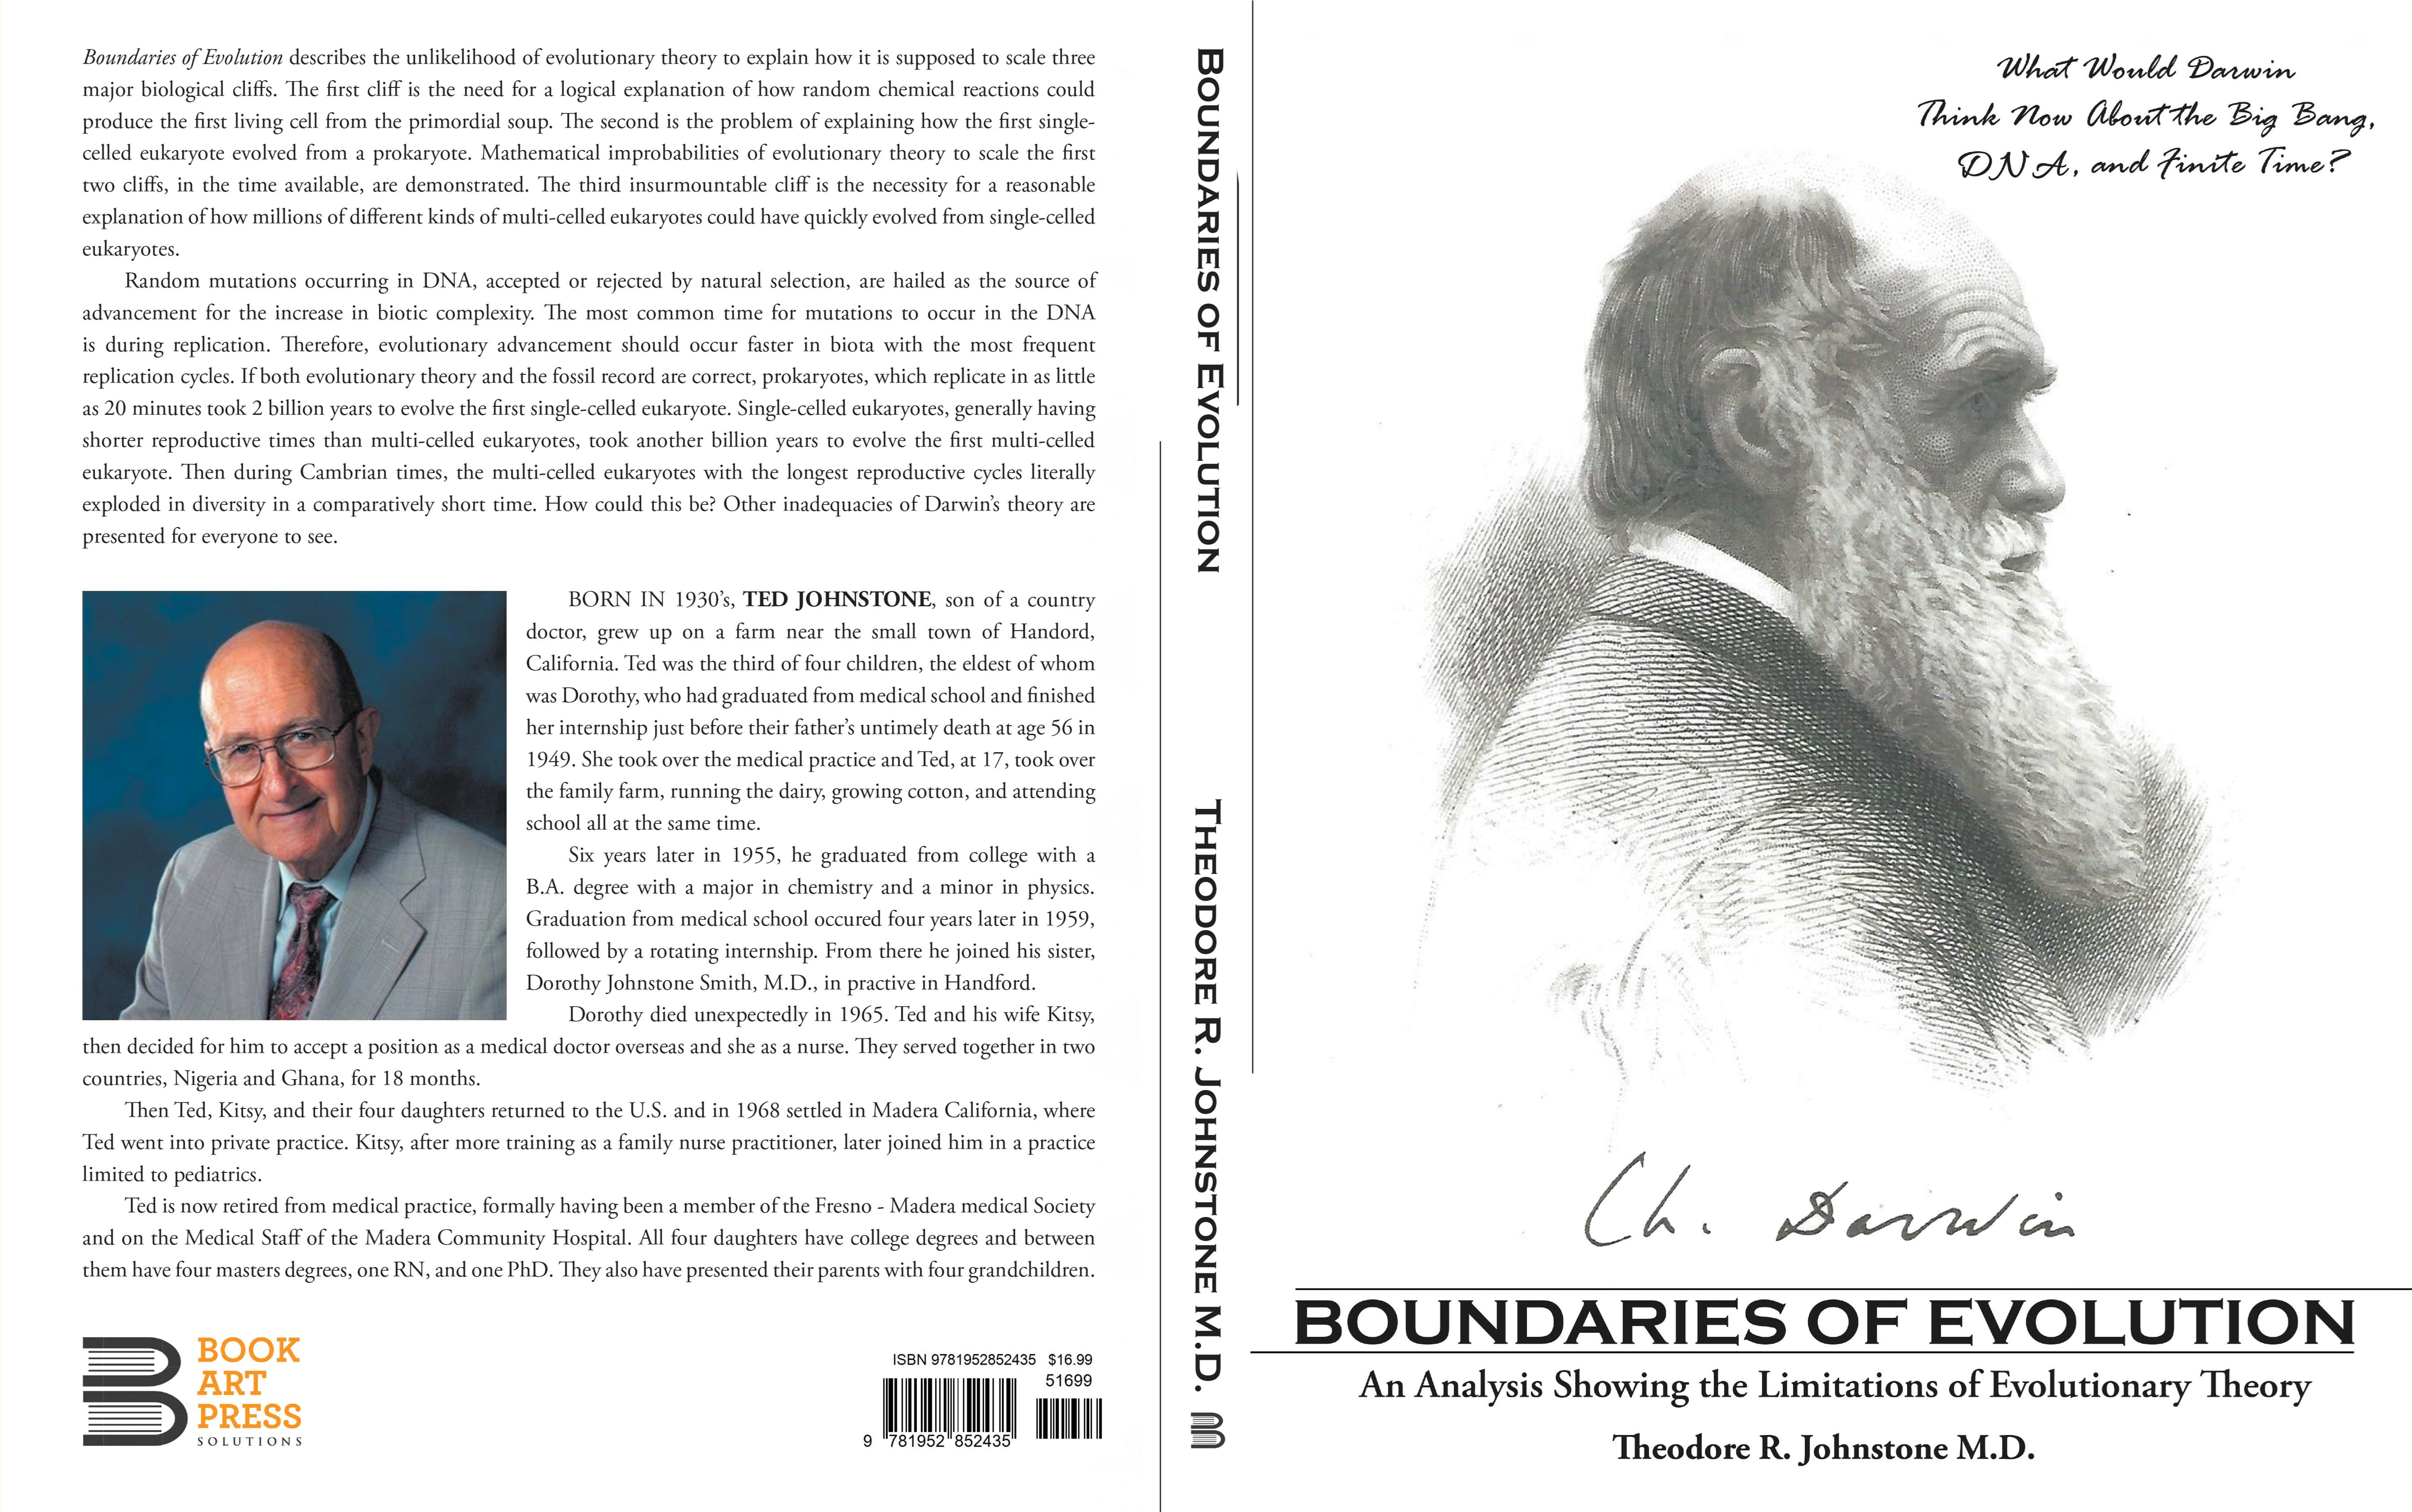 Boundaries Of Evolution: What Would Darwin Think Now About The Big Bang, DNA, And Finite Time? cover image